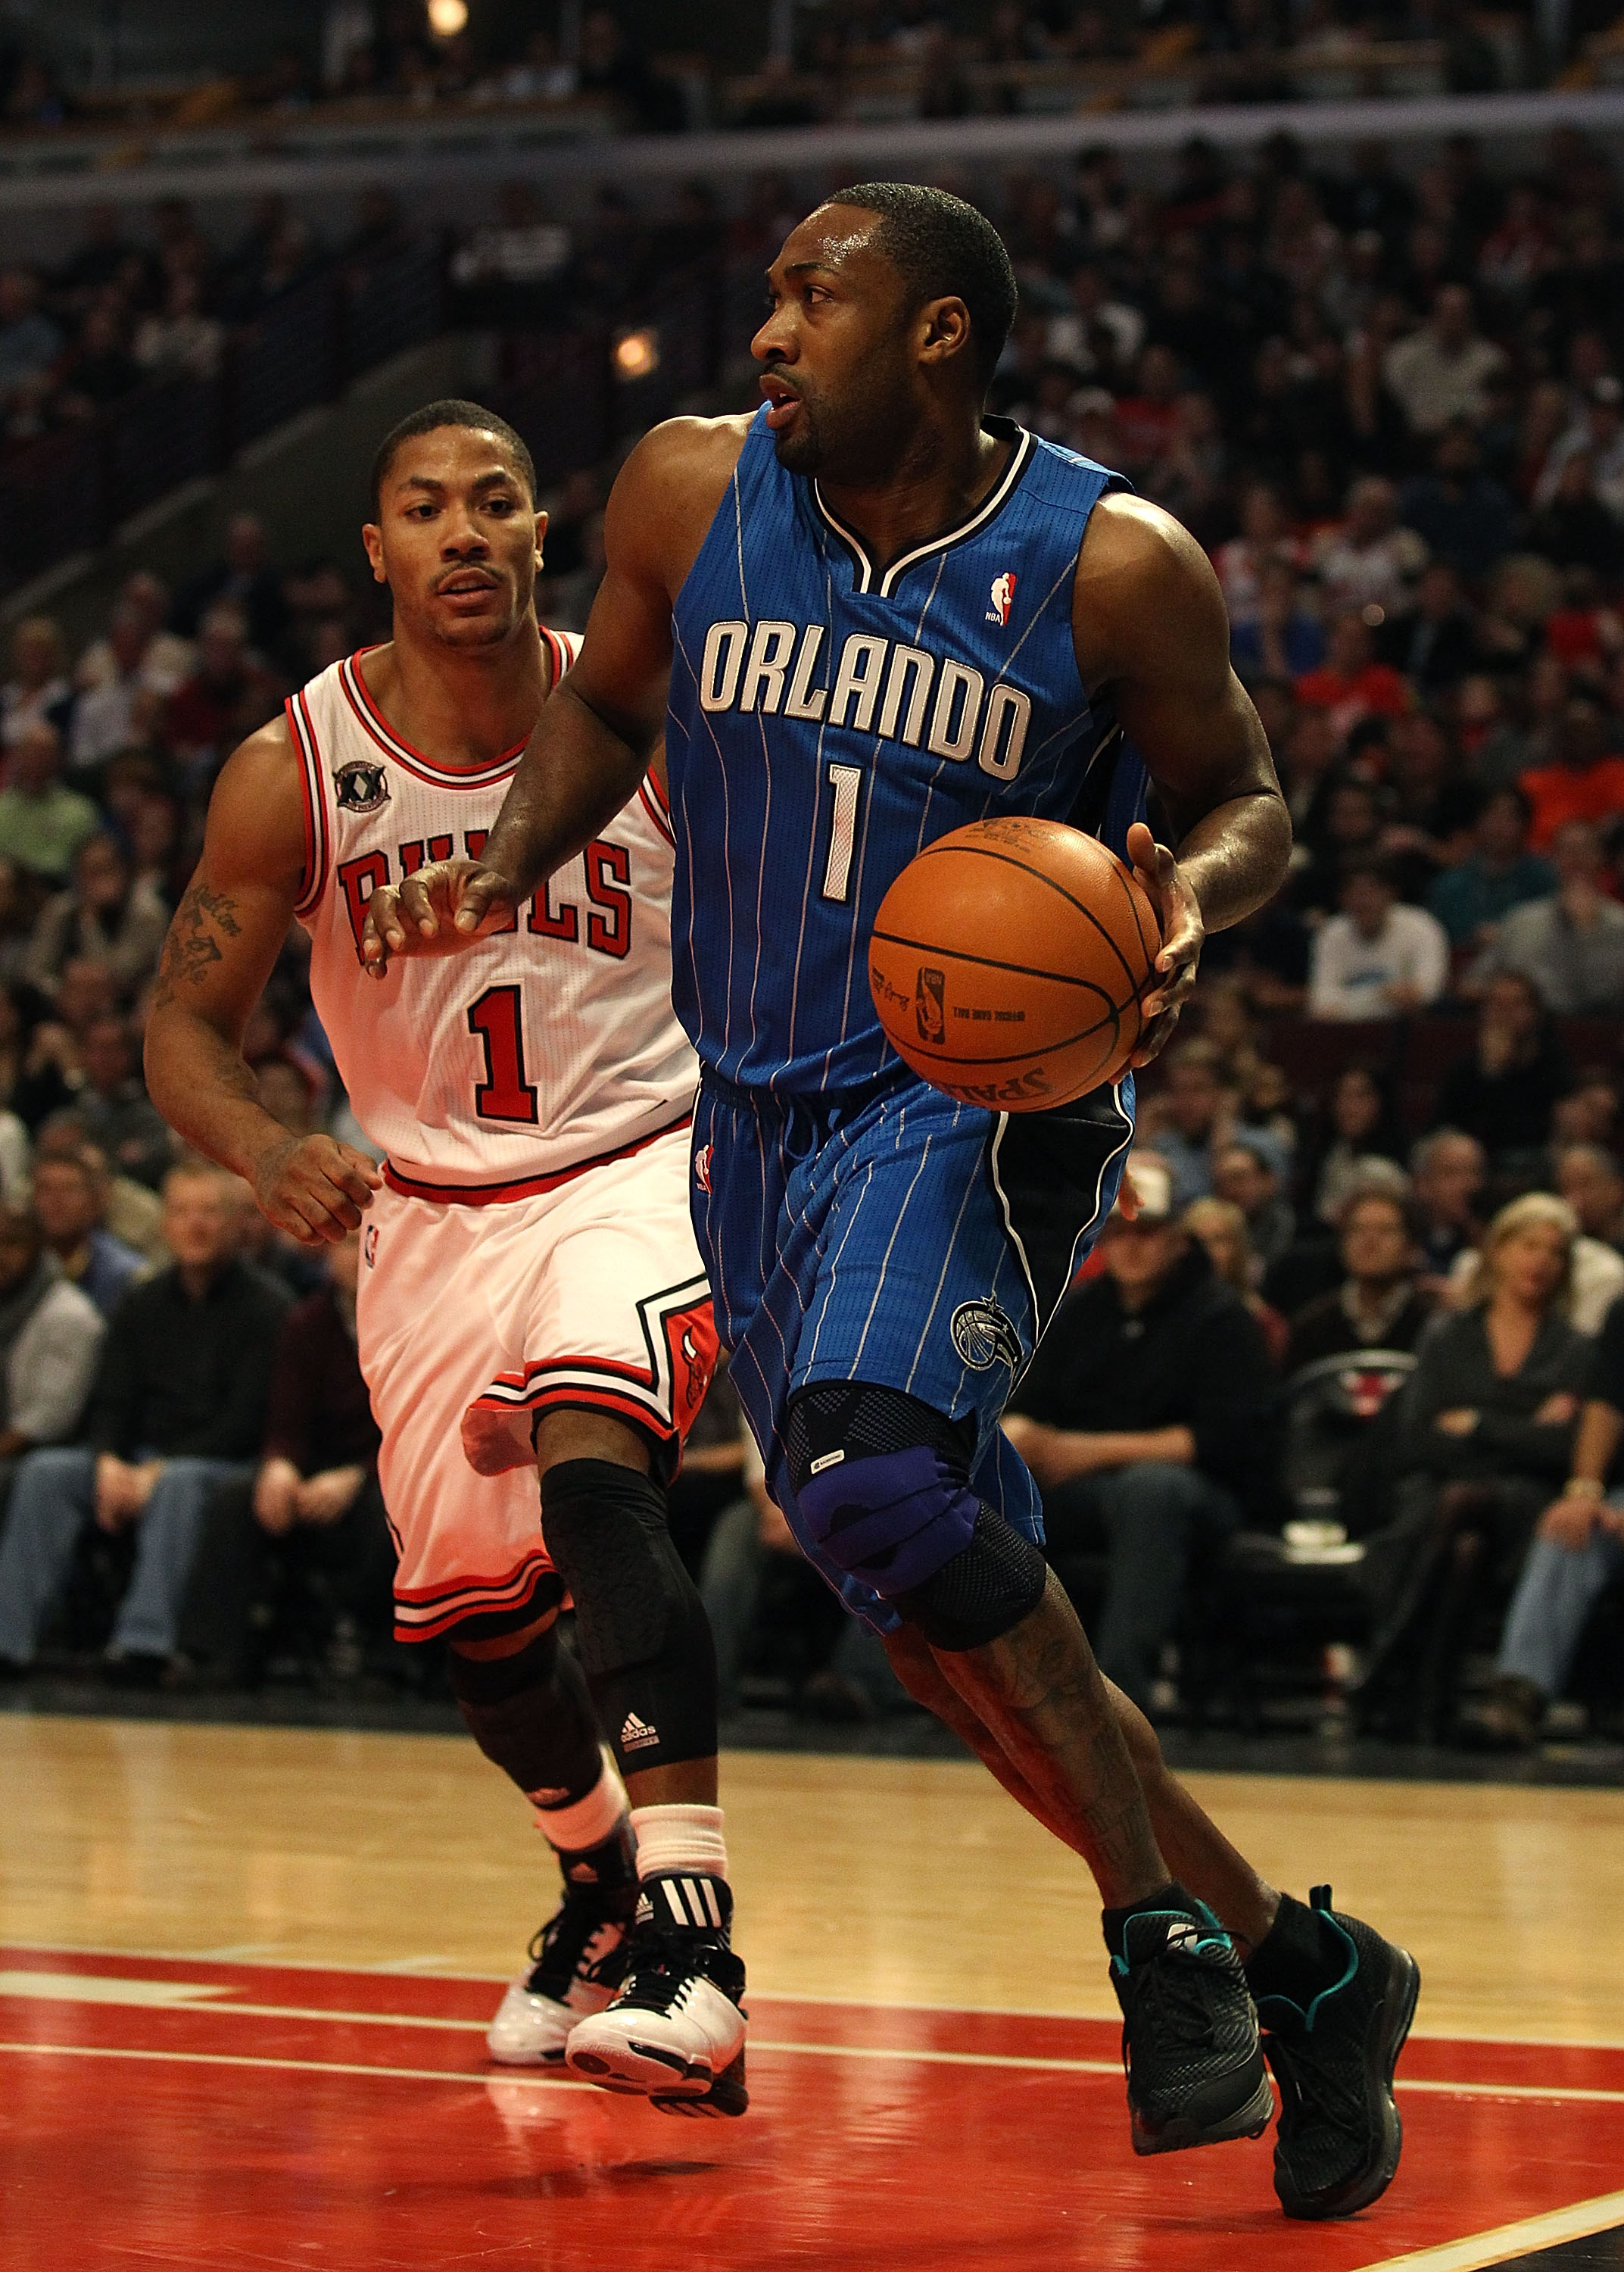 CHICAGO, IL - JANUARY 28: Gilbert Arenas #1 of the Orlando Magic moves past Derrick Rose #1 of the Chicago Bulls at the United Center on January 28, 2011 in Chicago, Illinois. The Bulls defeated the Magic 99-90. NOTE TO USER: User expressly acknowledges a